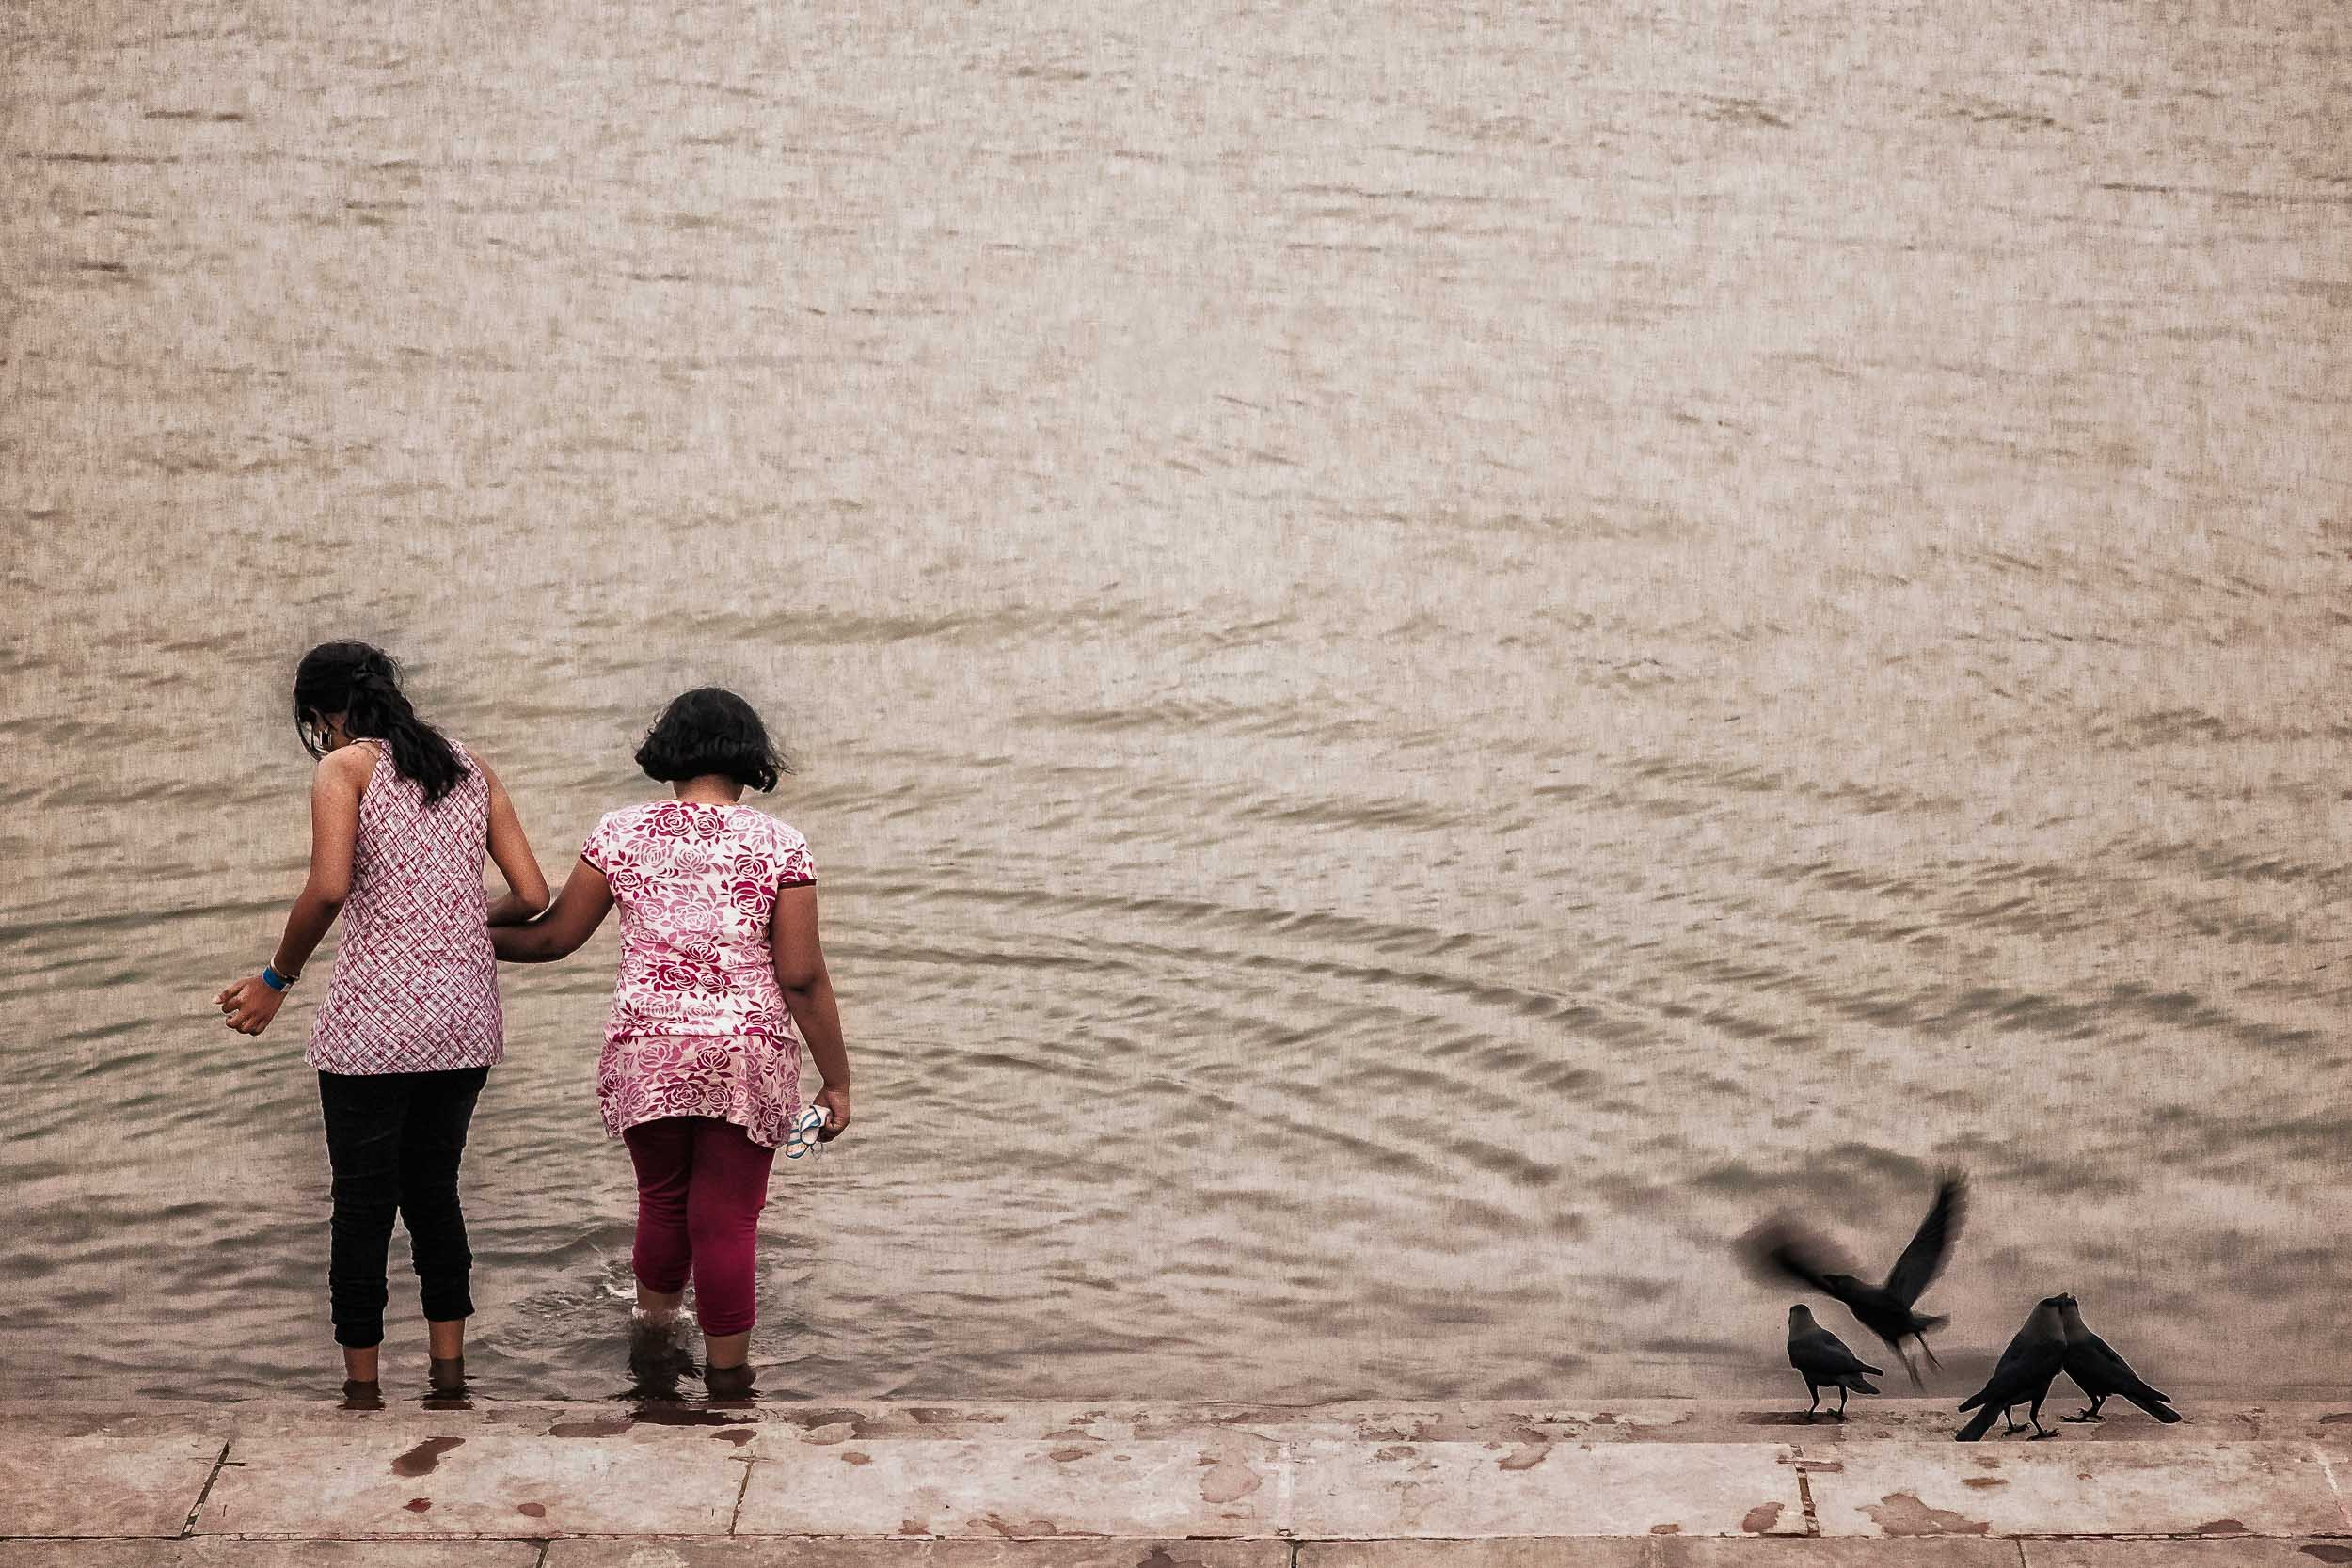 Two girls    step gingerly into the    waters of the Hooghly River    in    Kolkata, India   . This is Version Two with the bottle towards the top of the frame removed.